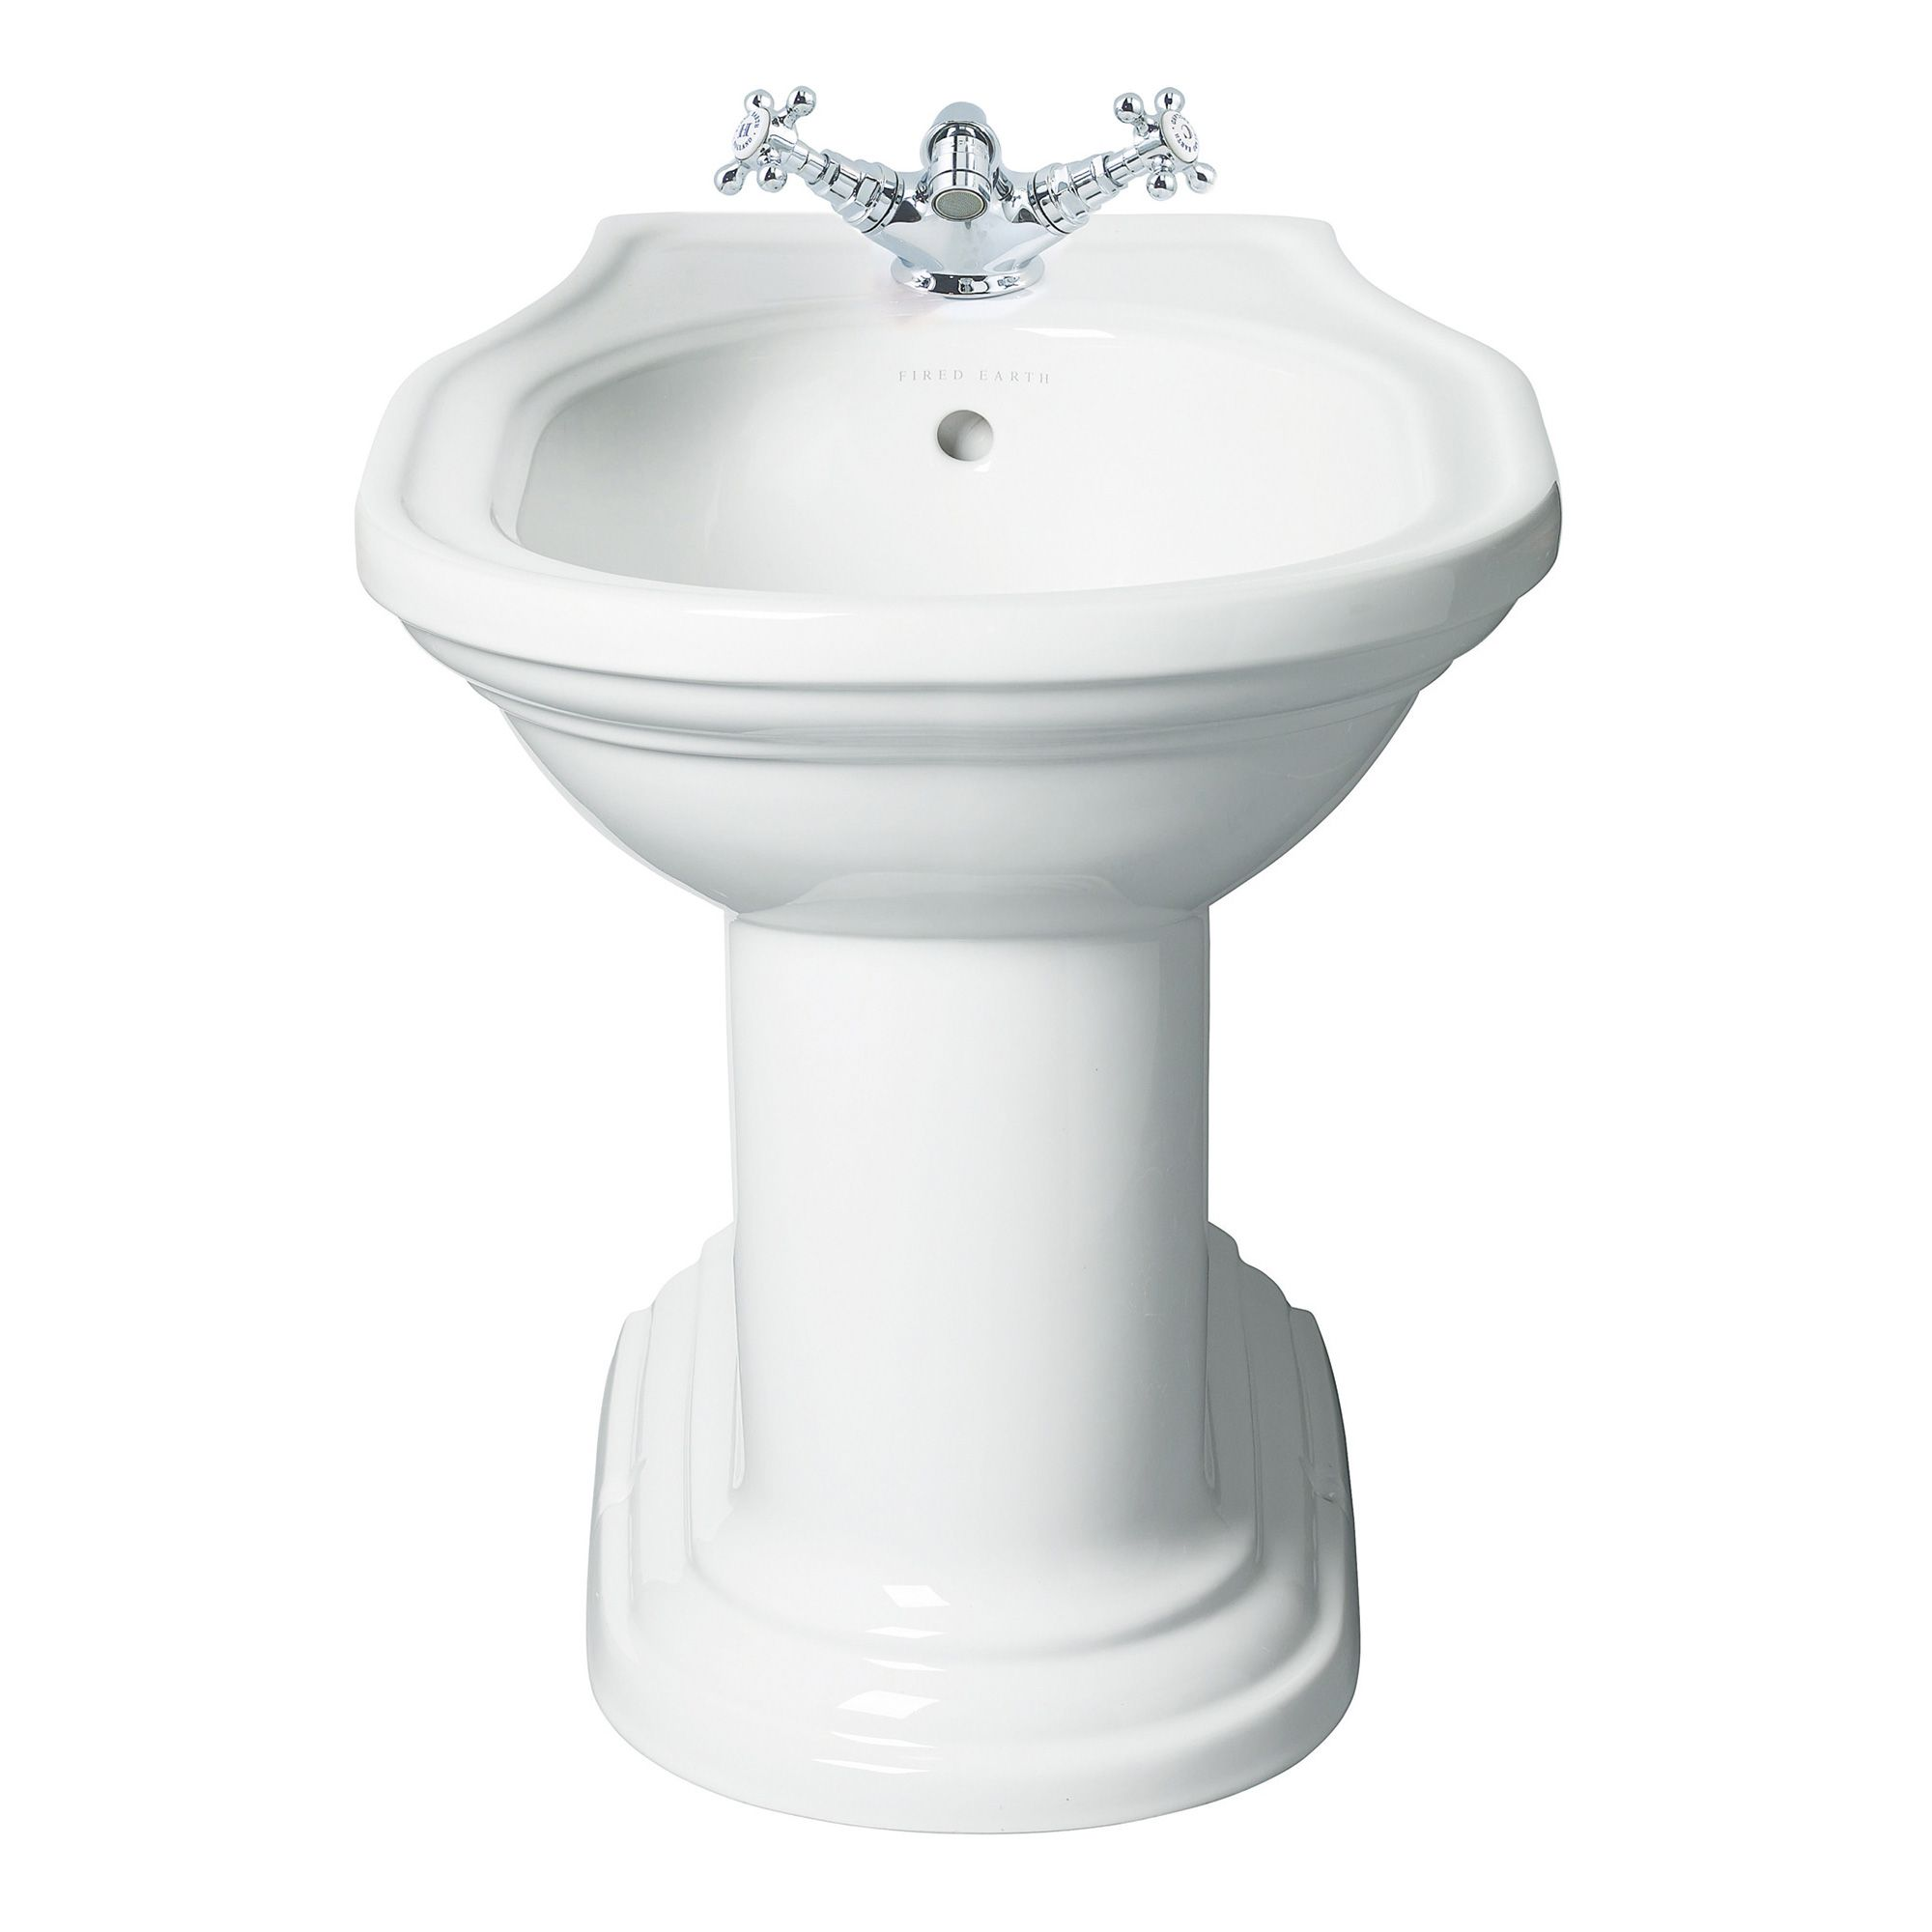 Atlantic Back to Wall Bidet